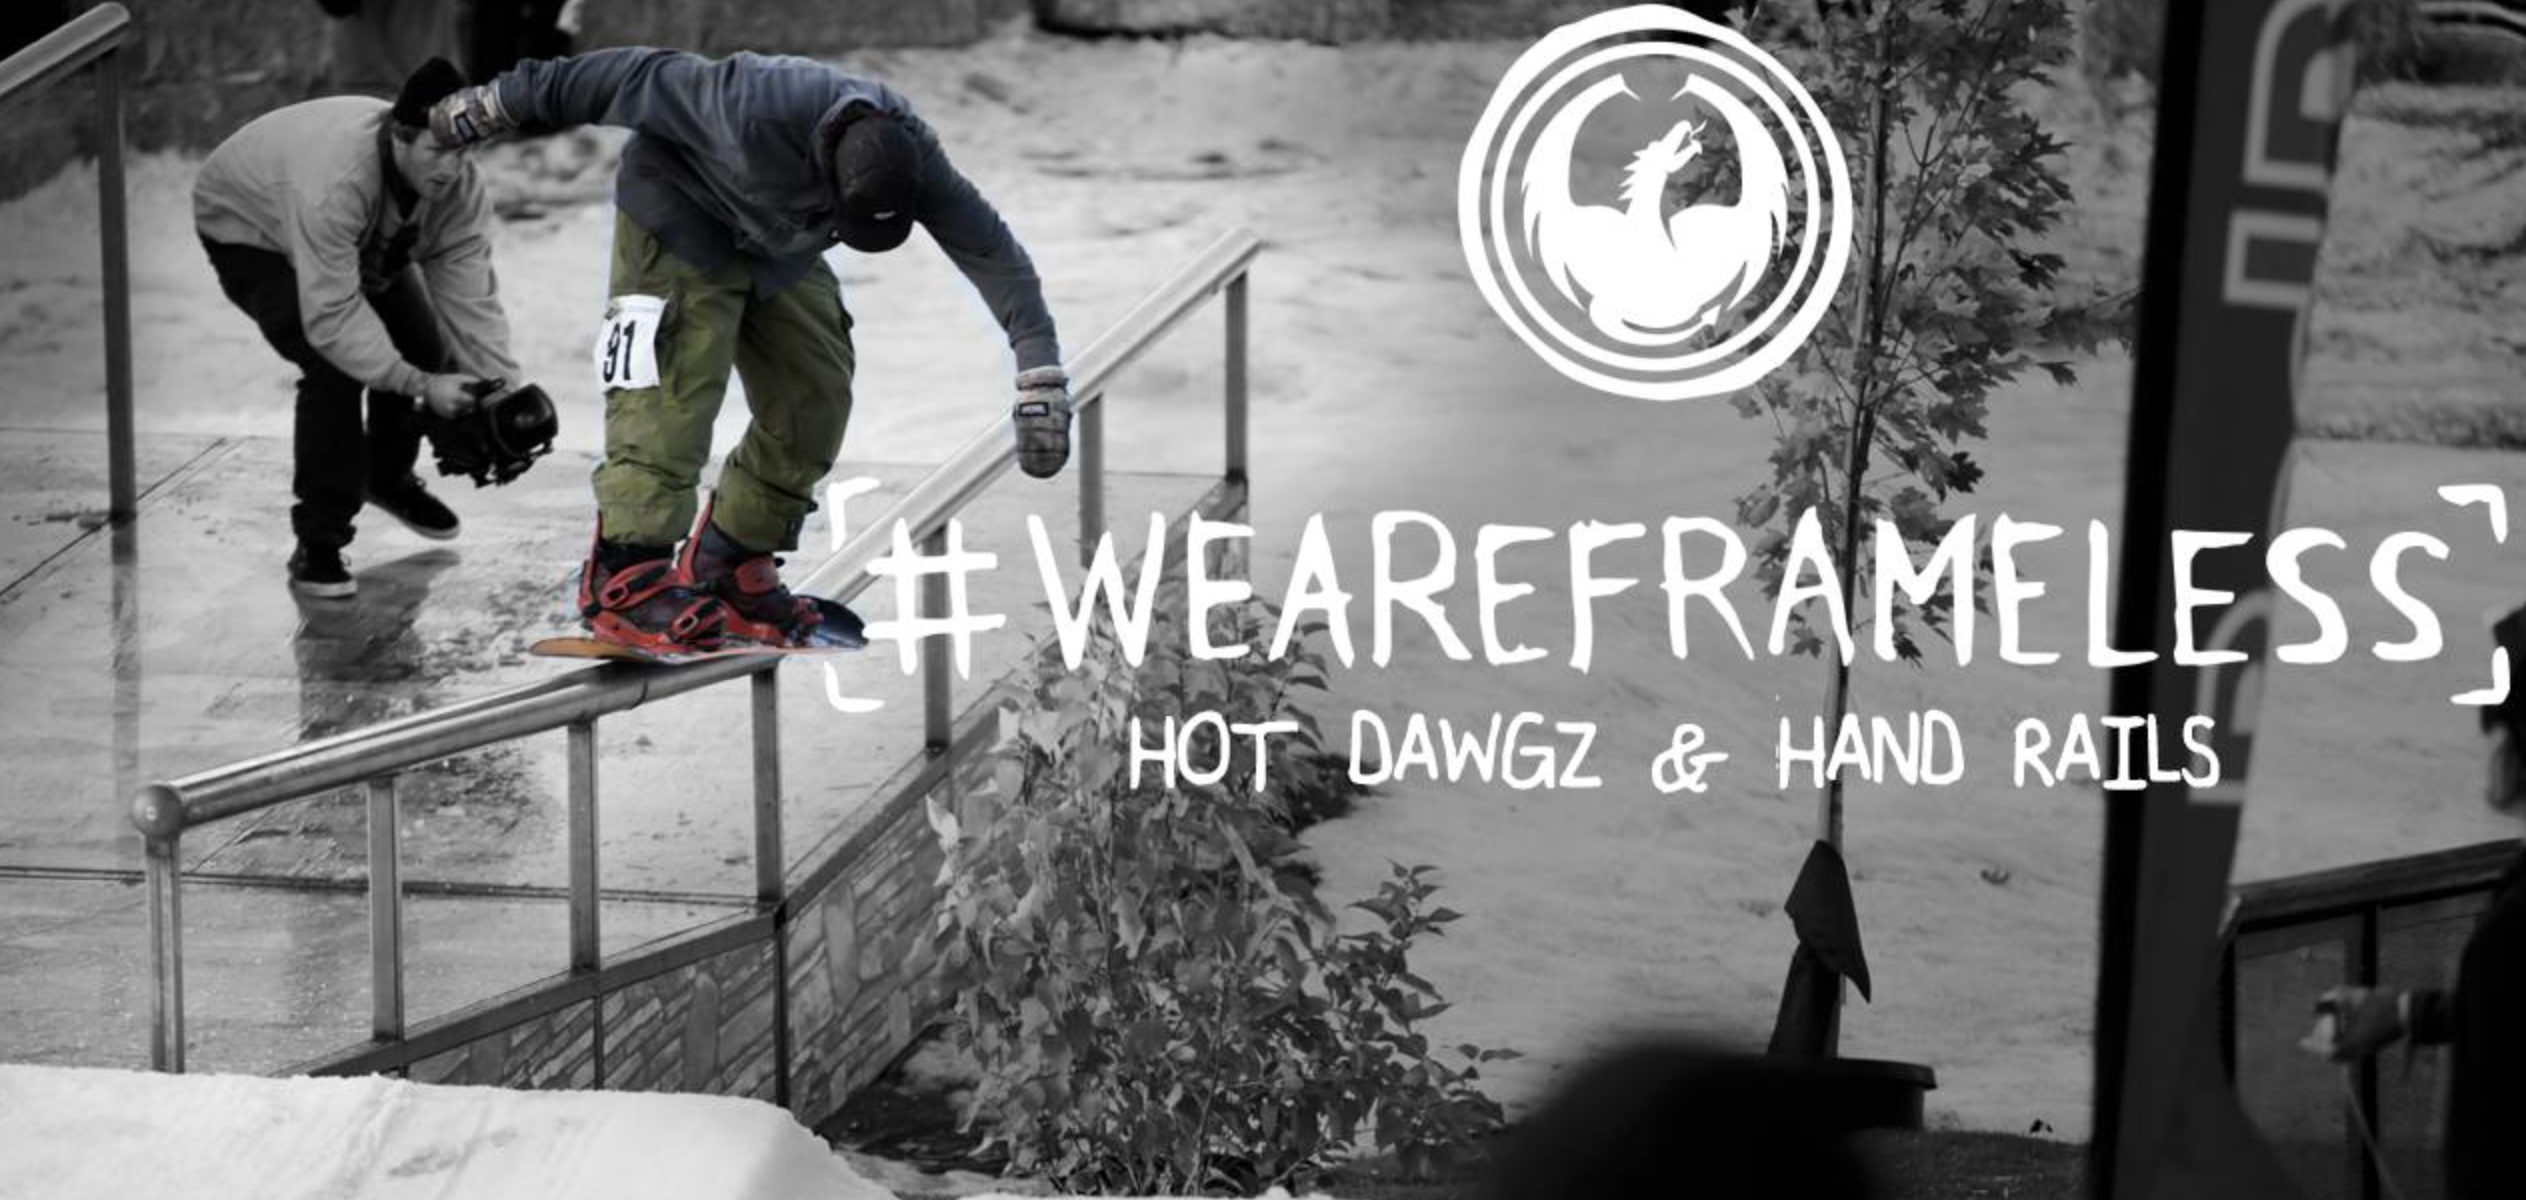 Hot Dawgz and Hand Rails